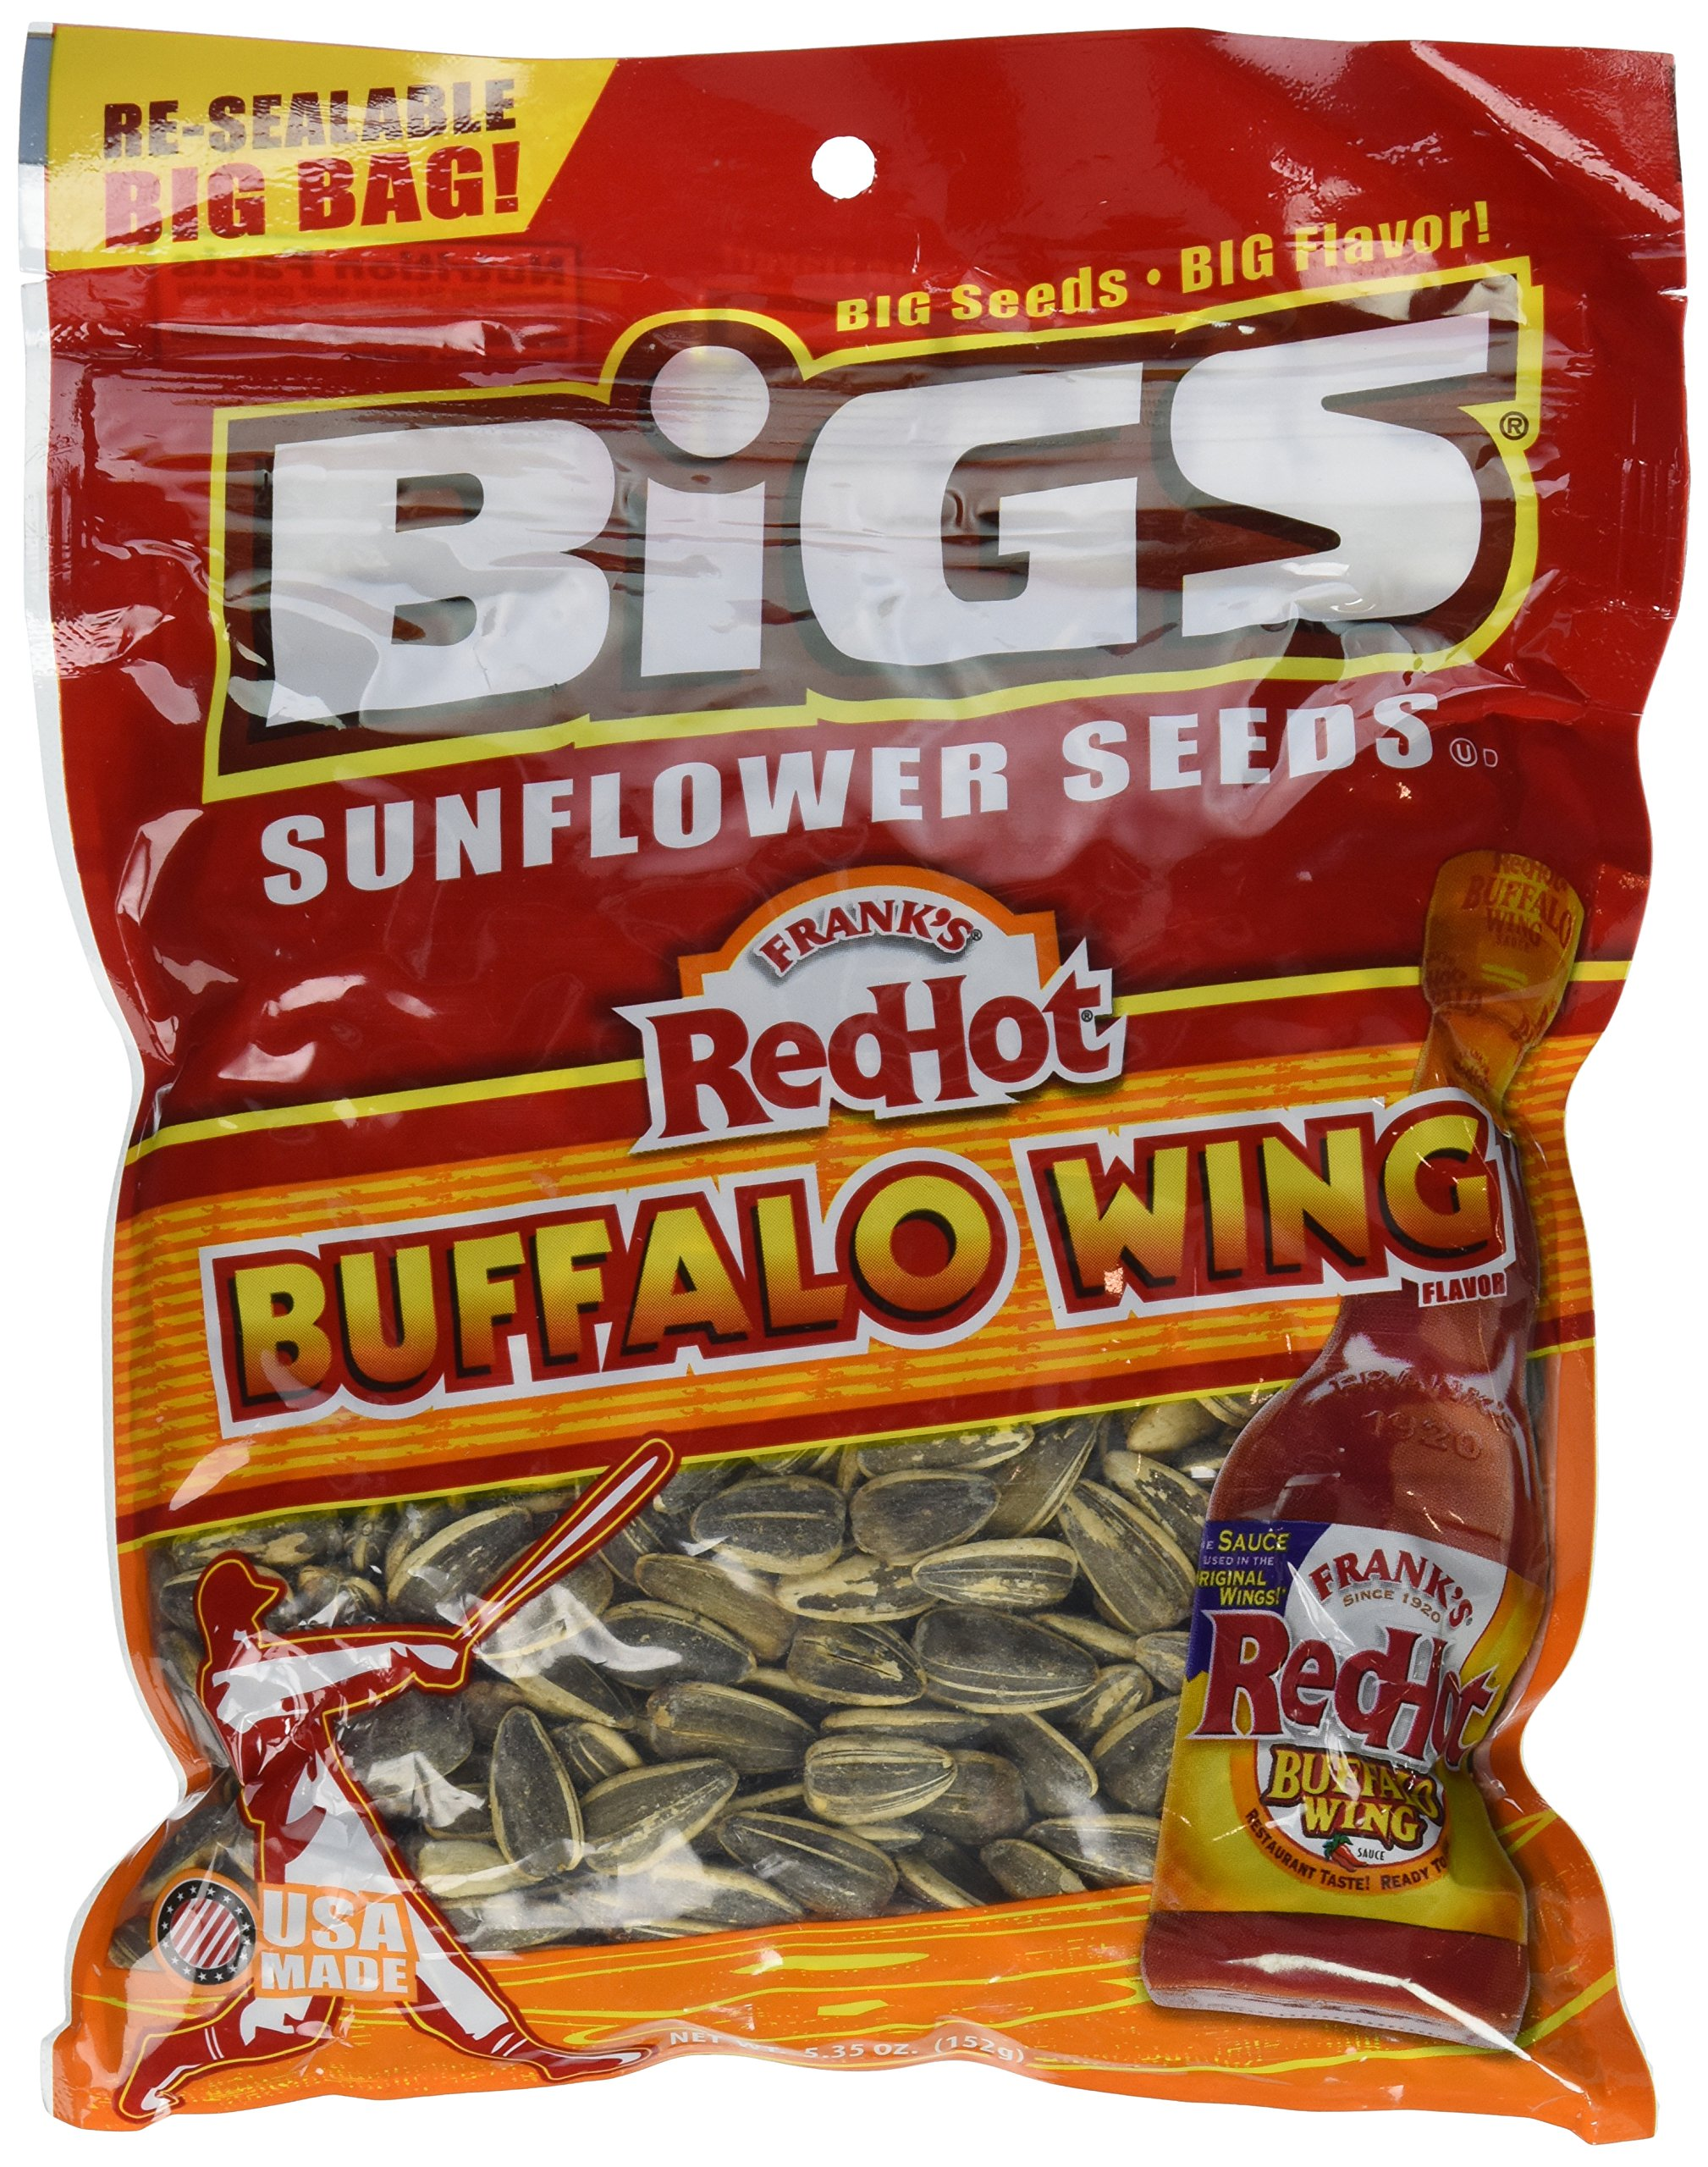 Bigs Frank's Hot Buffalo Wing Sunflower Seed, 5.35-Ounce (Pack of 3)